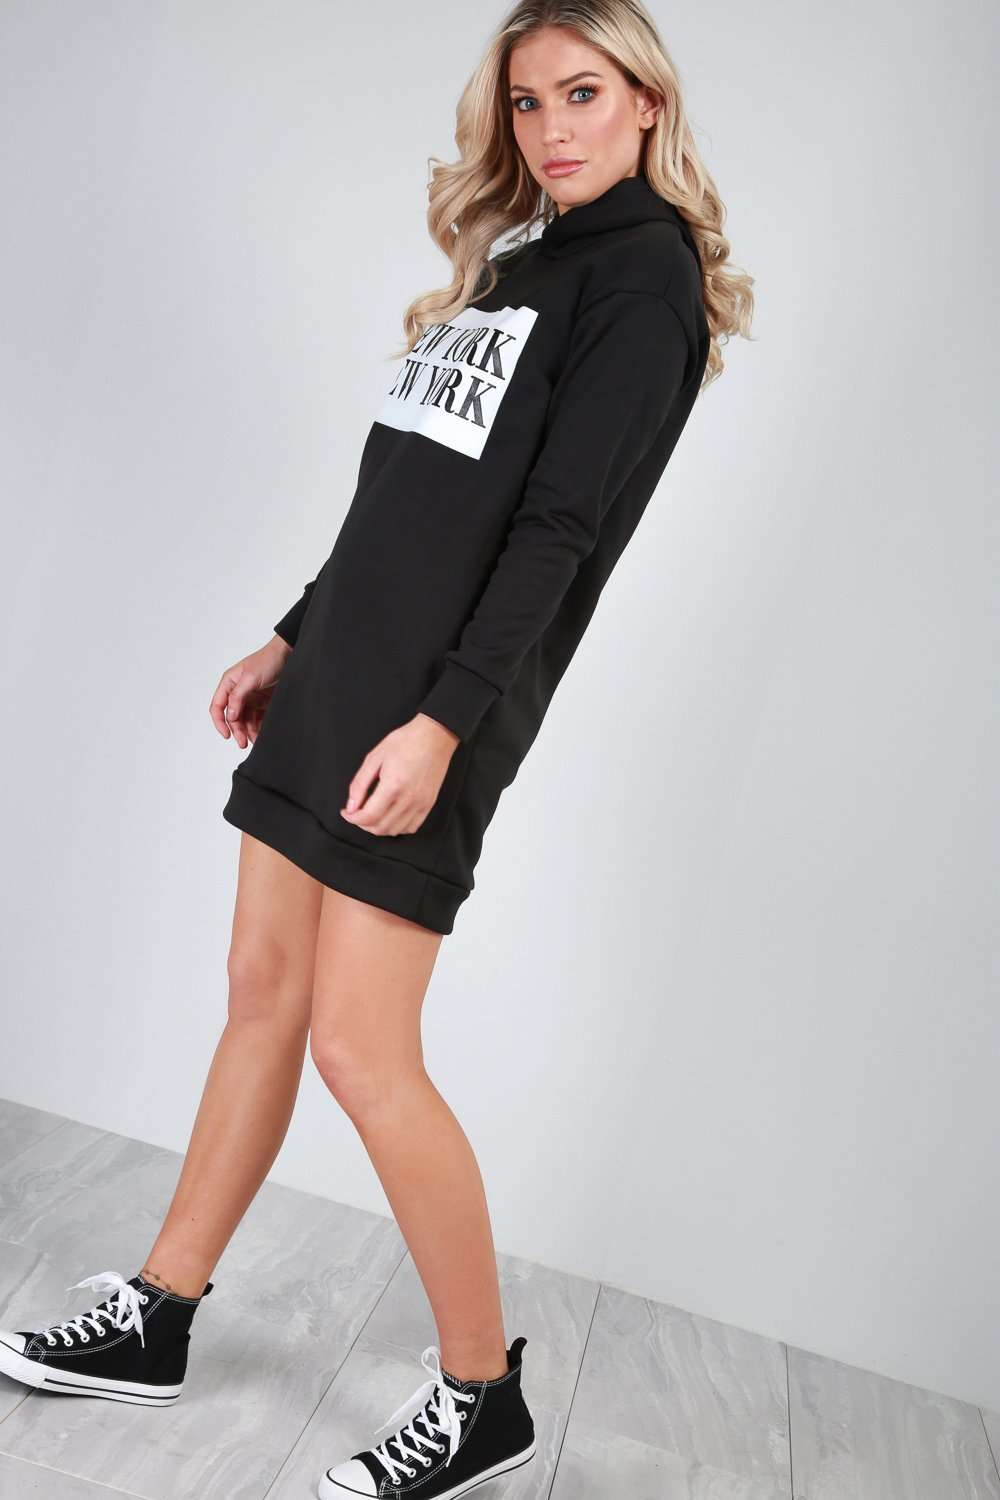 Sally New York Slogan Print Sweater Dress - bejealous-com